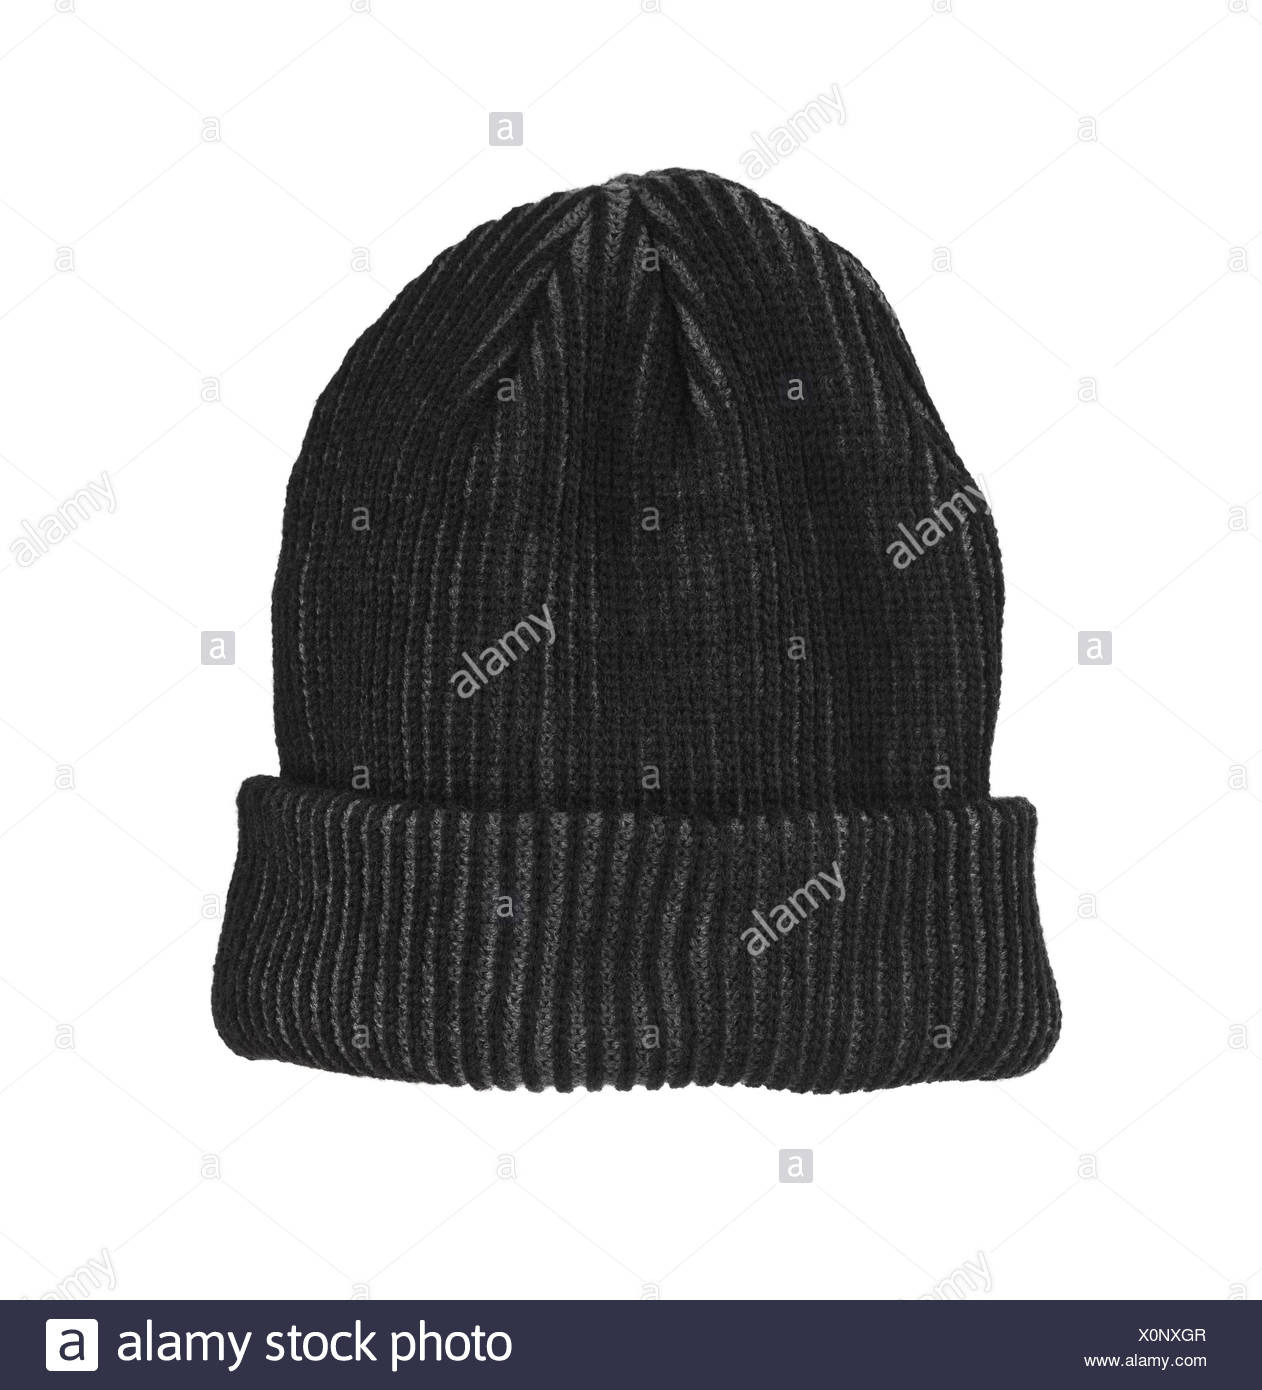 Knitted wool hat - Stock Image